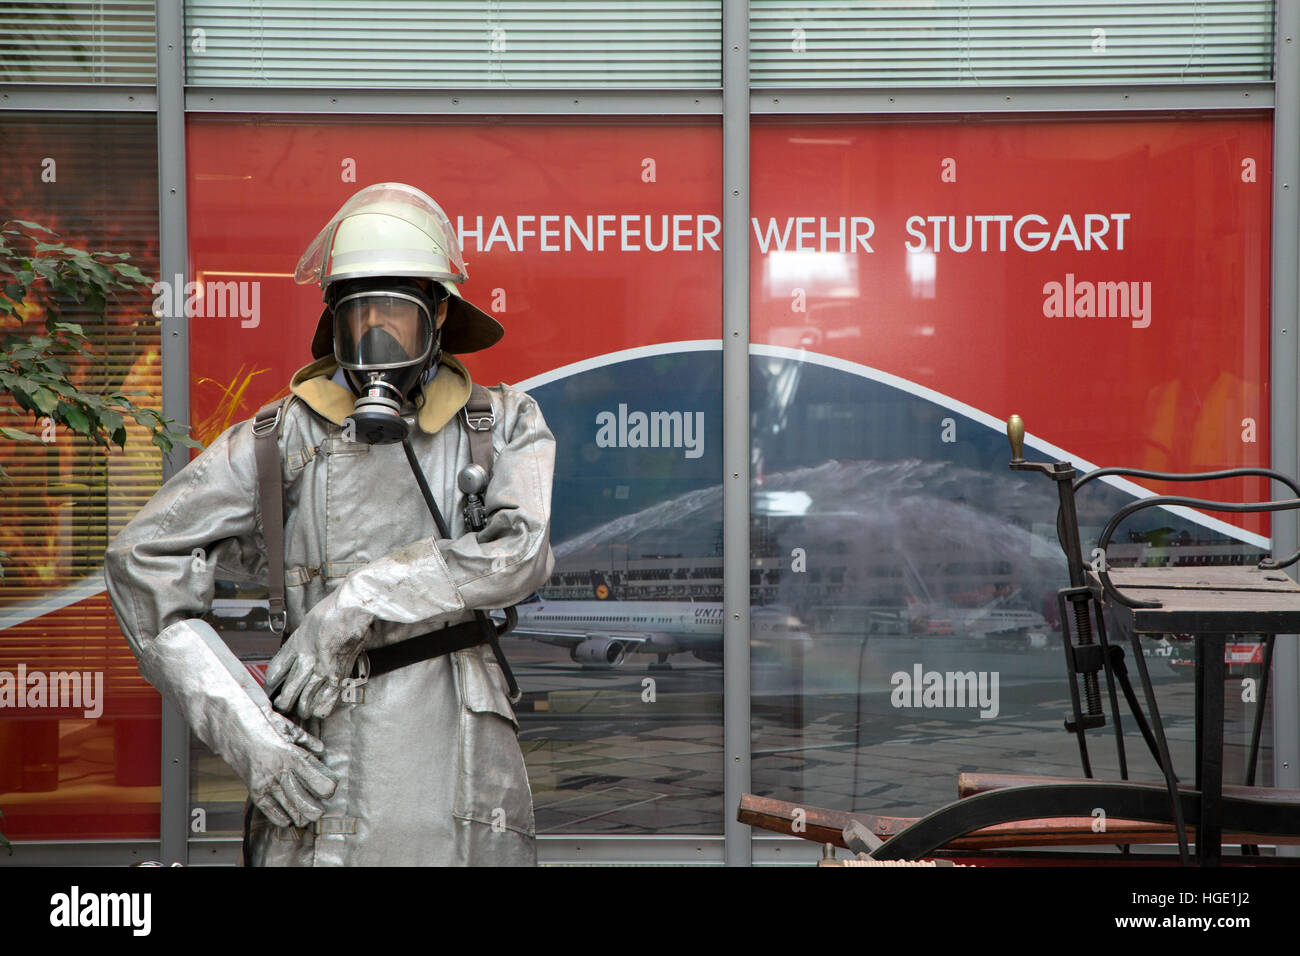 A model wearing breathing aparatus at the fire station at Stuttgart Airport in Stuttgart, Germany. - Stock Image